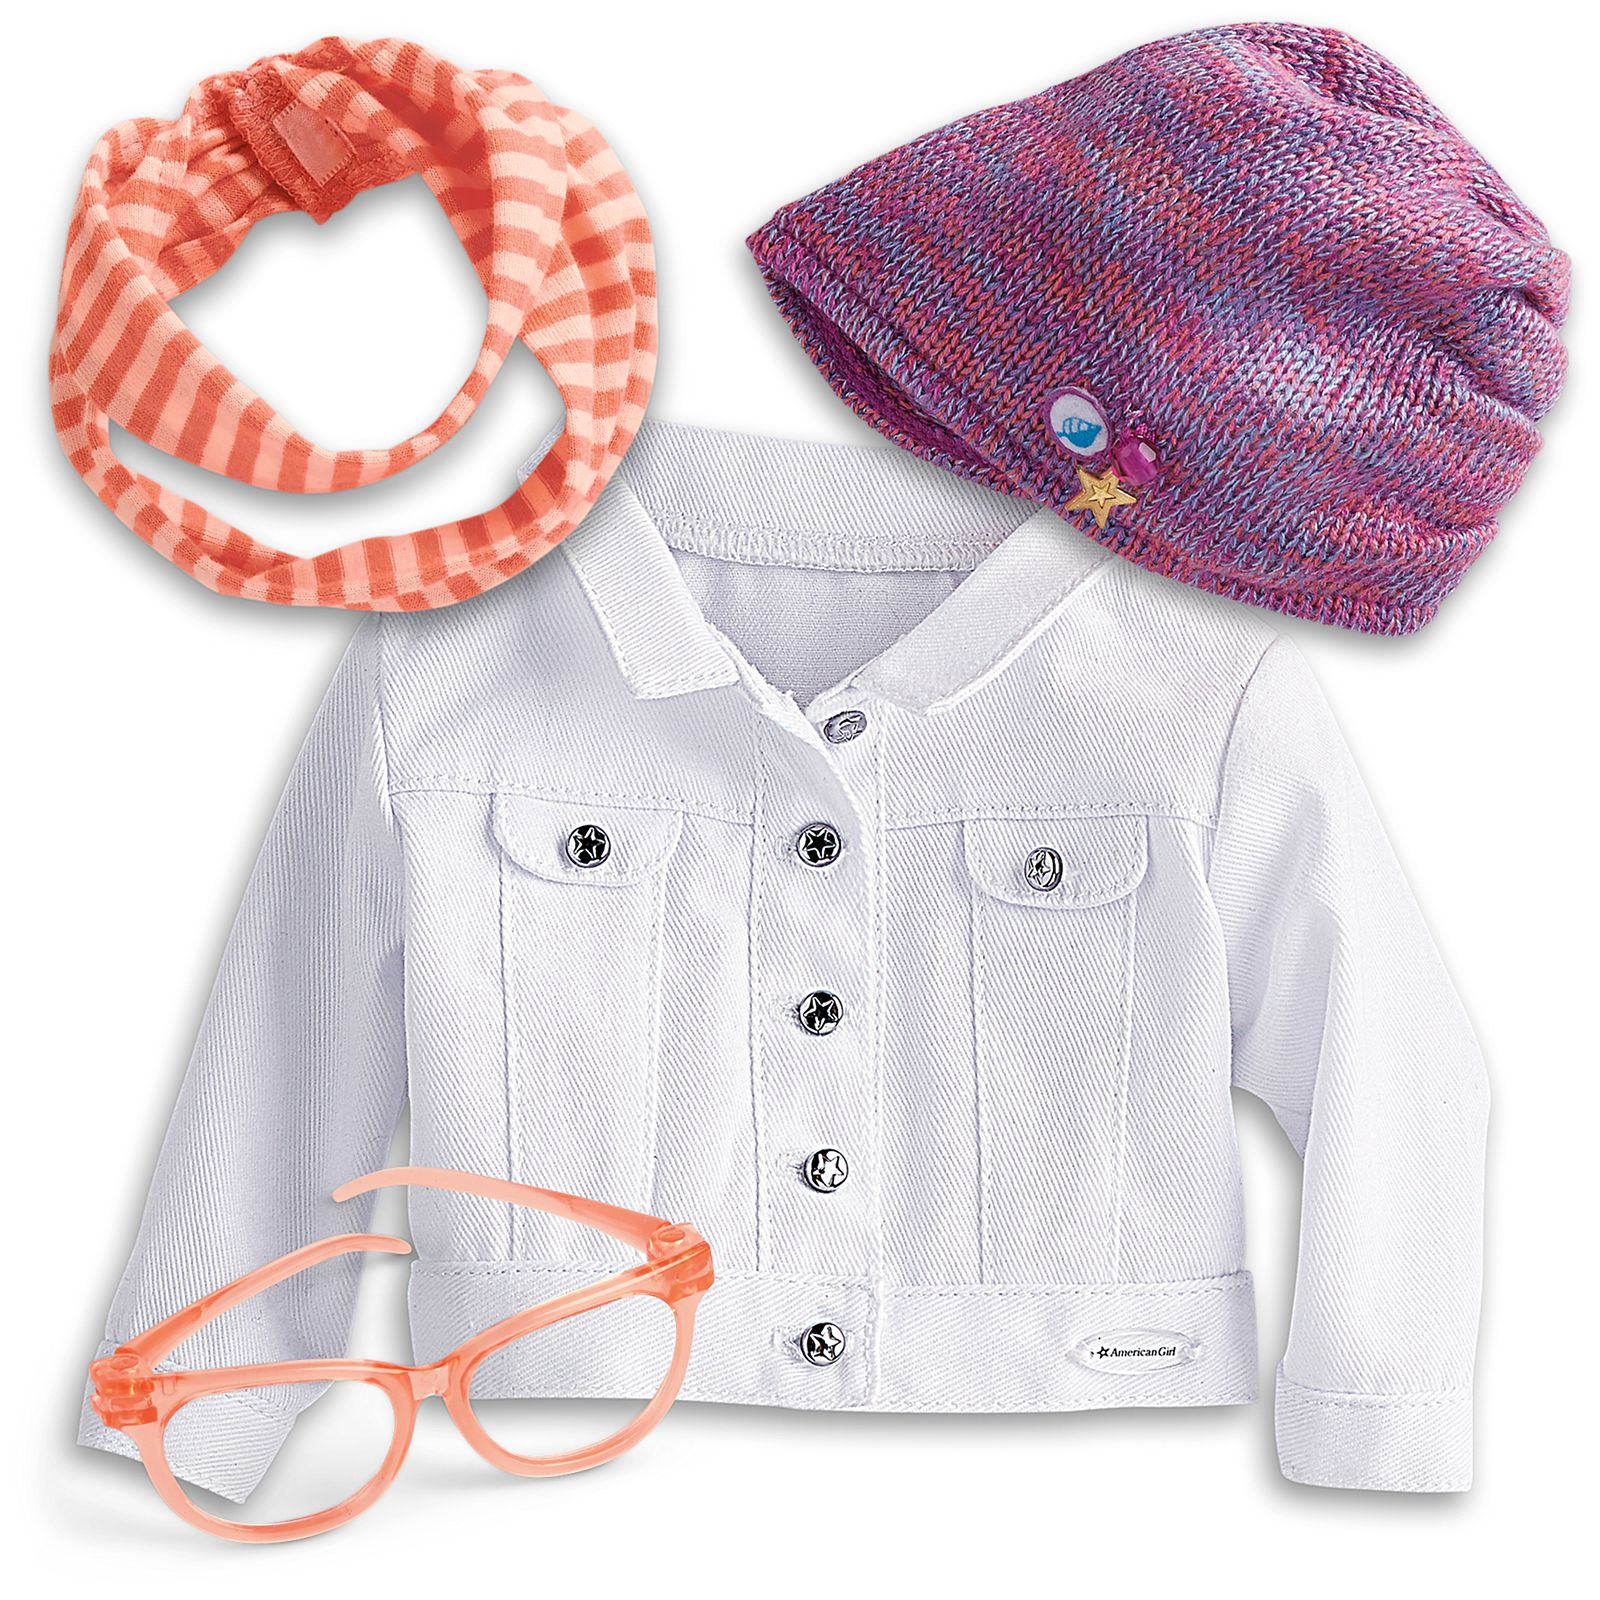 American girl set 2 of  hat /& scarf kit 18/'/' doll accessories from  Z Yang/'s